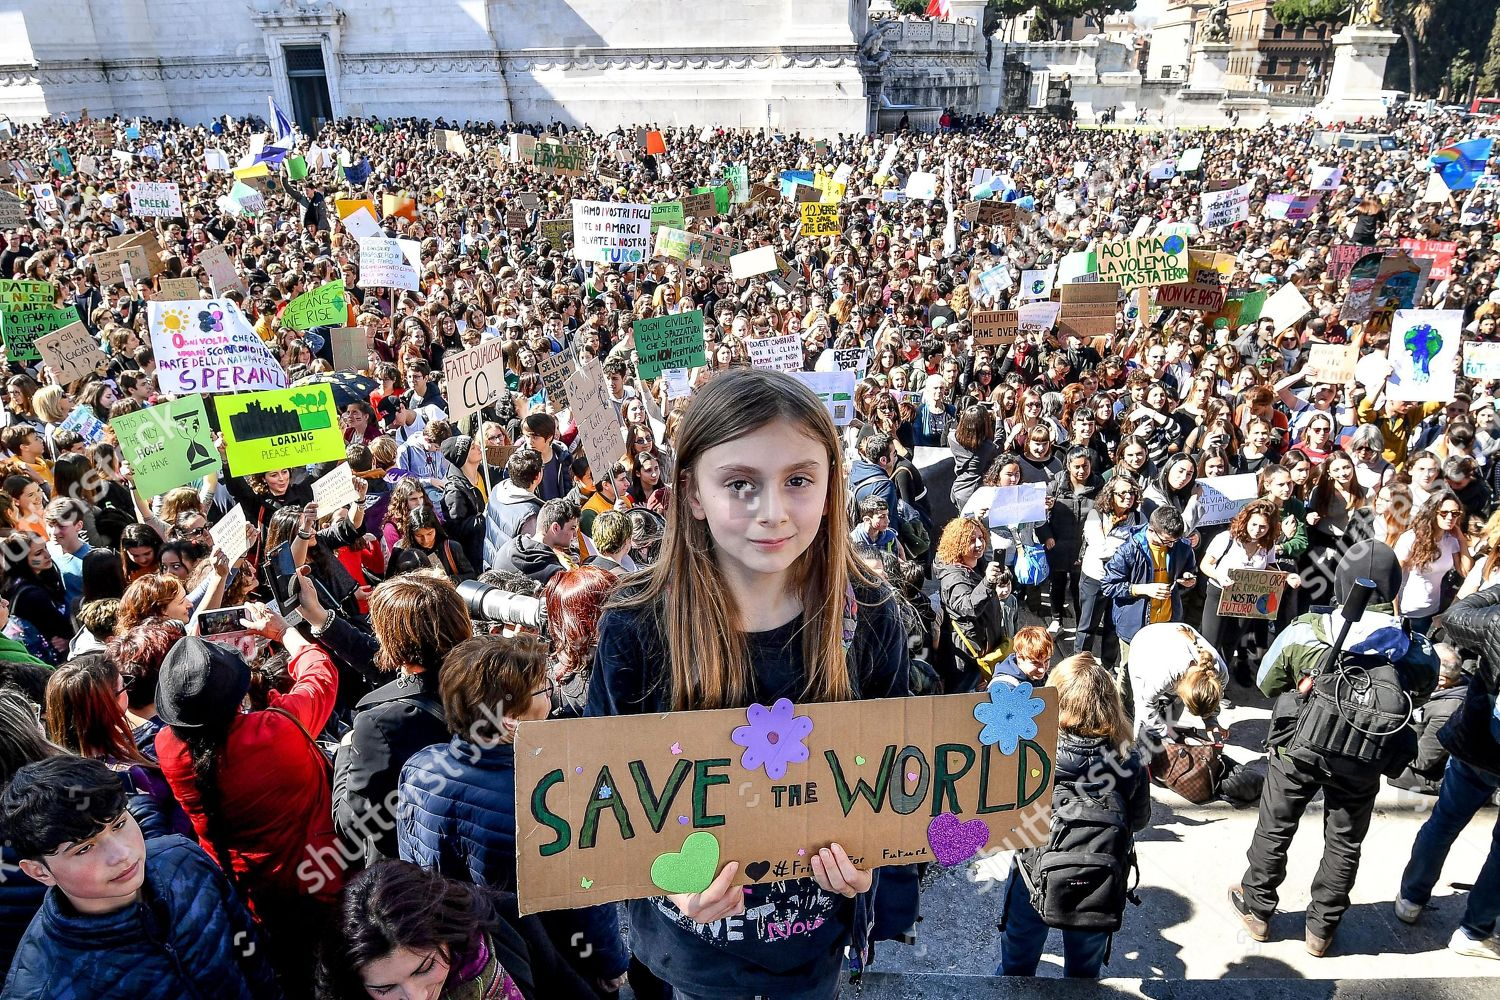 Mandatory Credit: Photo by ALESSANDRO DI MEO/EPA-EFE/Shutterstock (10156657e) Alice Imbastari, the youngest girl who takes part in the demonstration against global warming 'Global Climate Strike', in Rome, Italy, 15 March 2019. Students from several schools across the city are taking part in a massive global student strike movement called '#FridayForFuture' which was sparked by Greta Thunberg of Sweden, a sixteen year old climate activist who has been protesting outside the Swedish parliament every Friday since August 2018. 'Global Climate Strike' rally in Rome, Italy - 15 Mar 2019